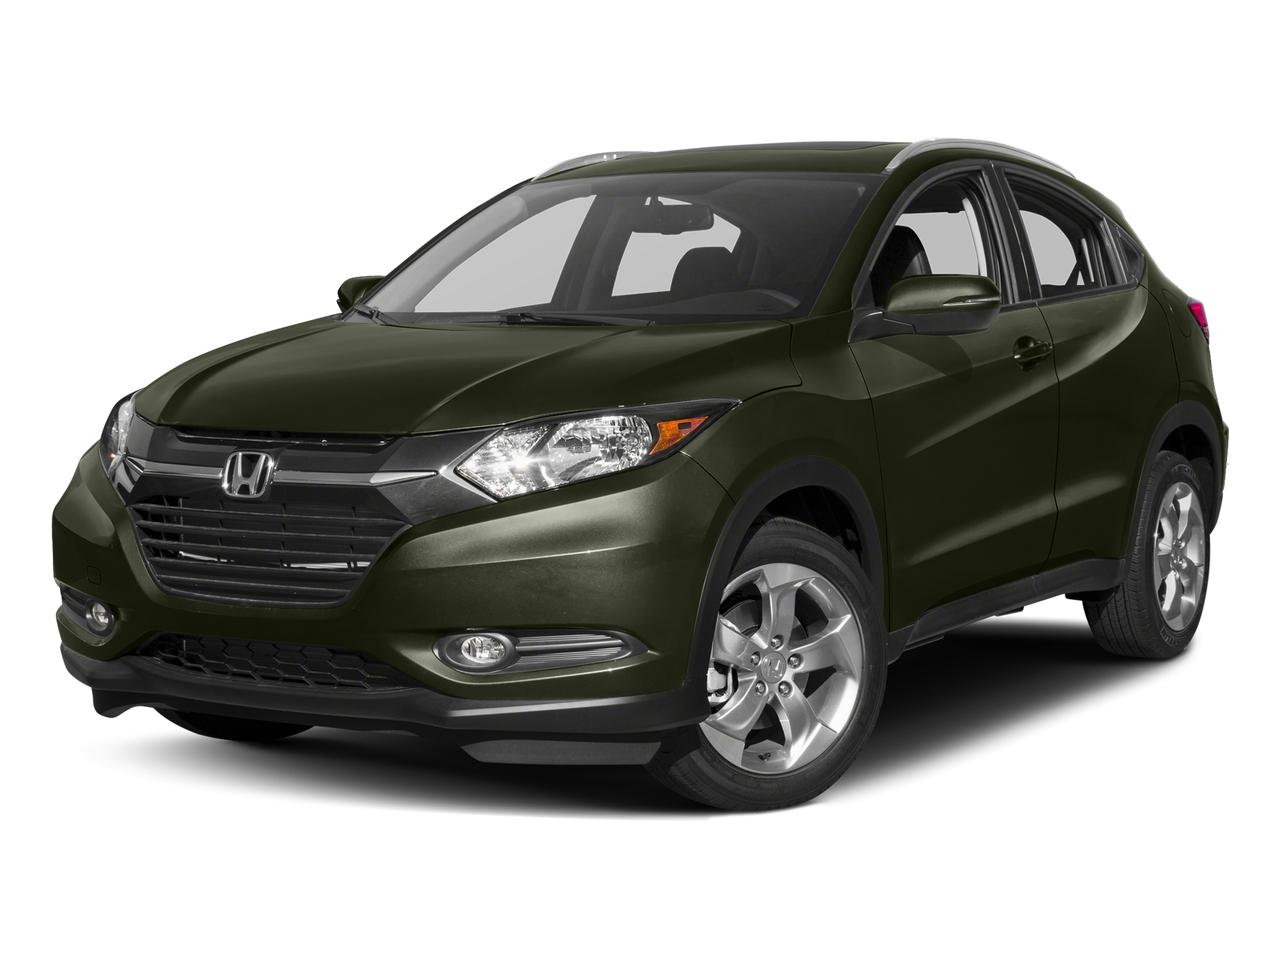 2017 Honda HR-V Vehicle Photo in Salem, VA 24153